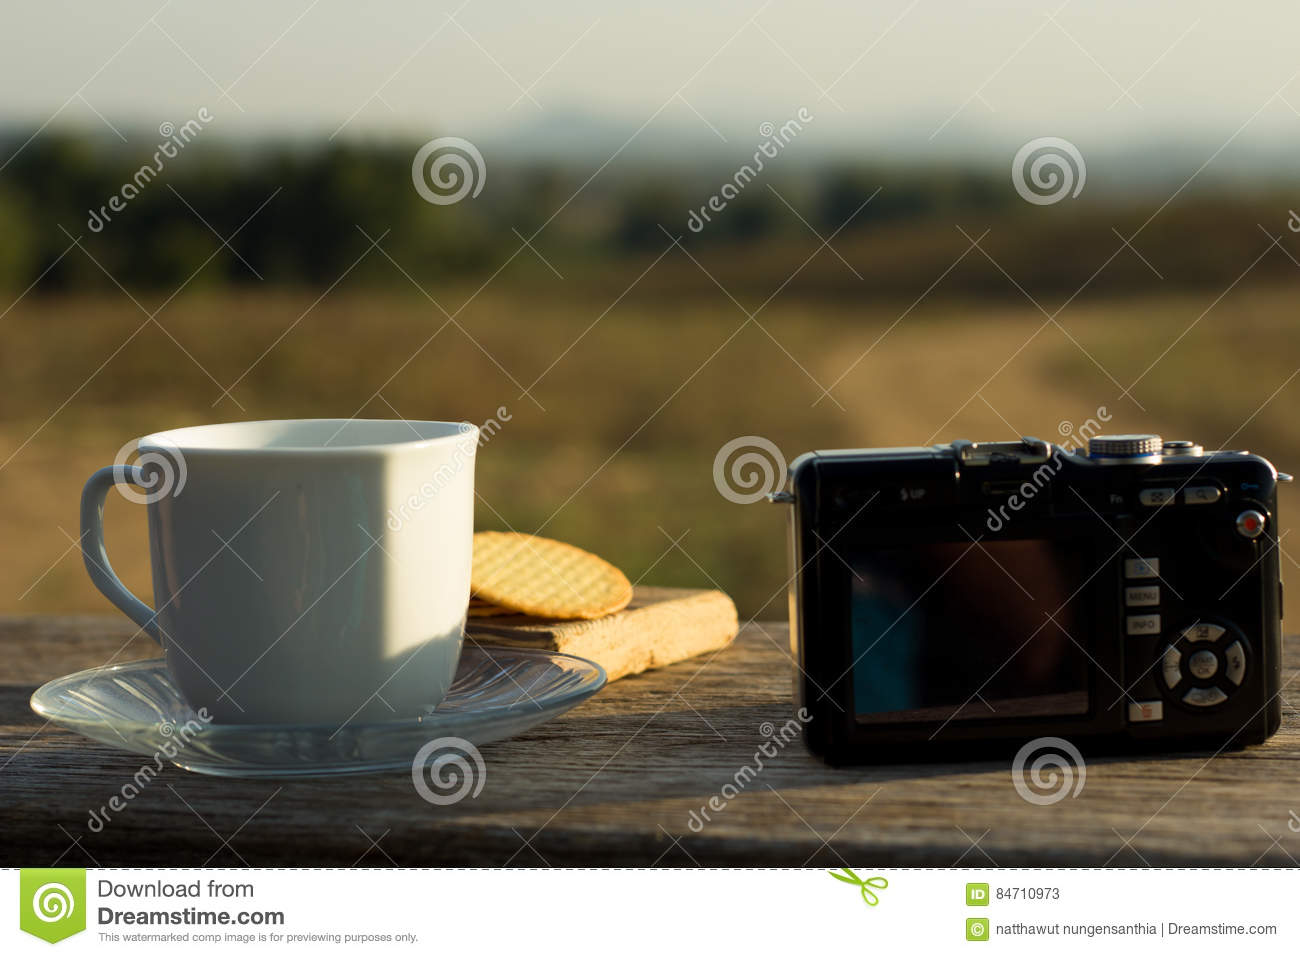 Coffee with snacks meadows as a backdrop, Place the camera with